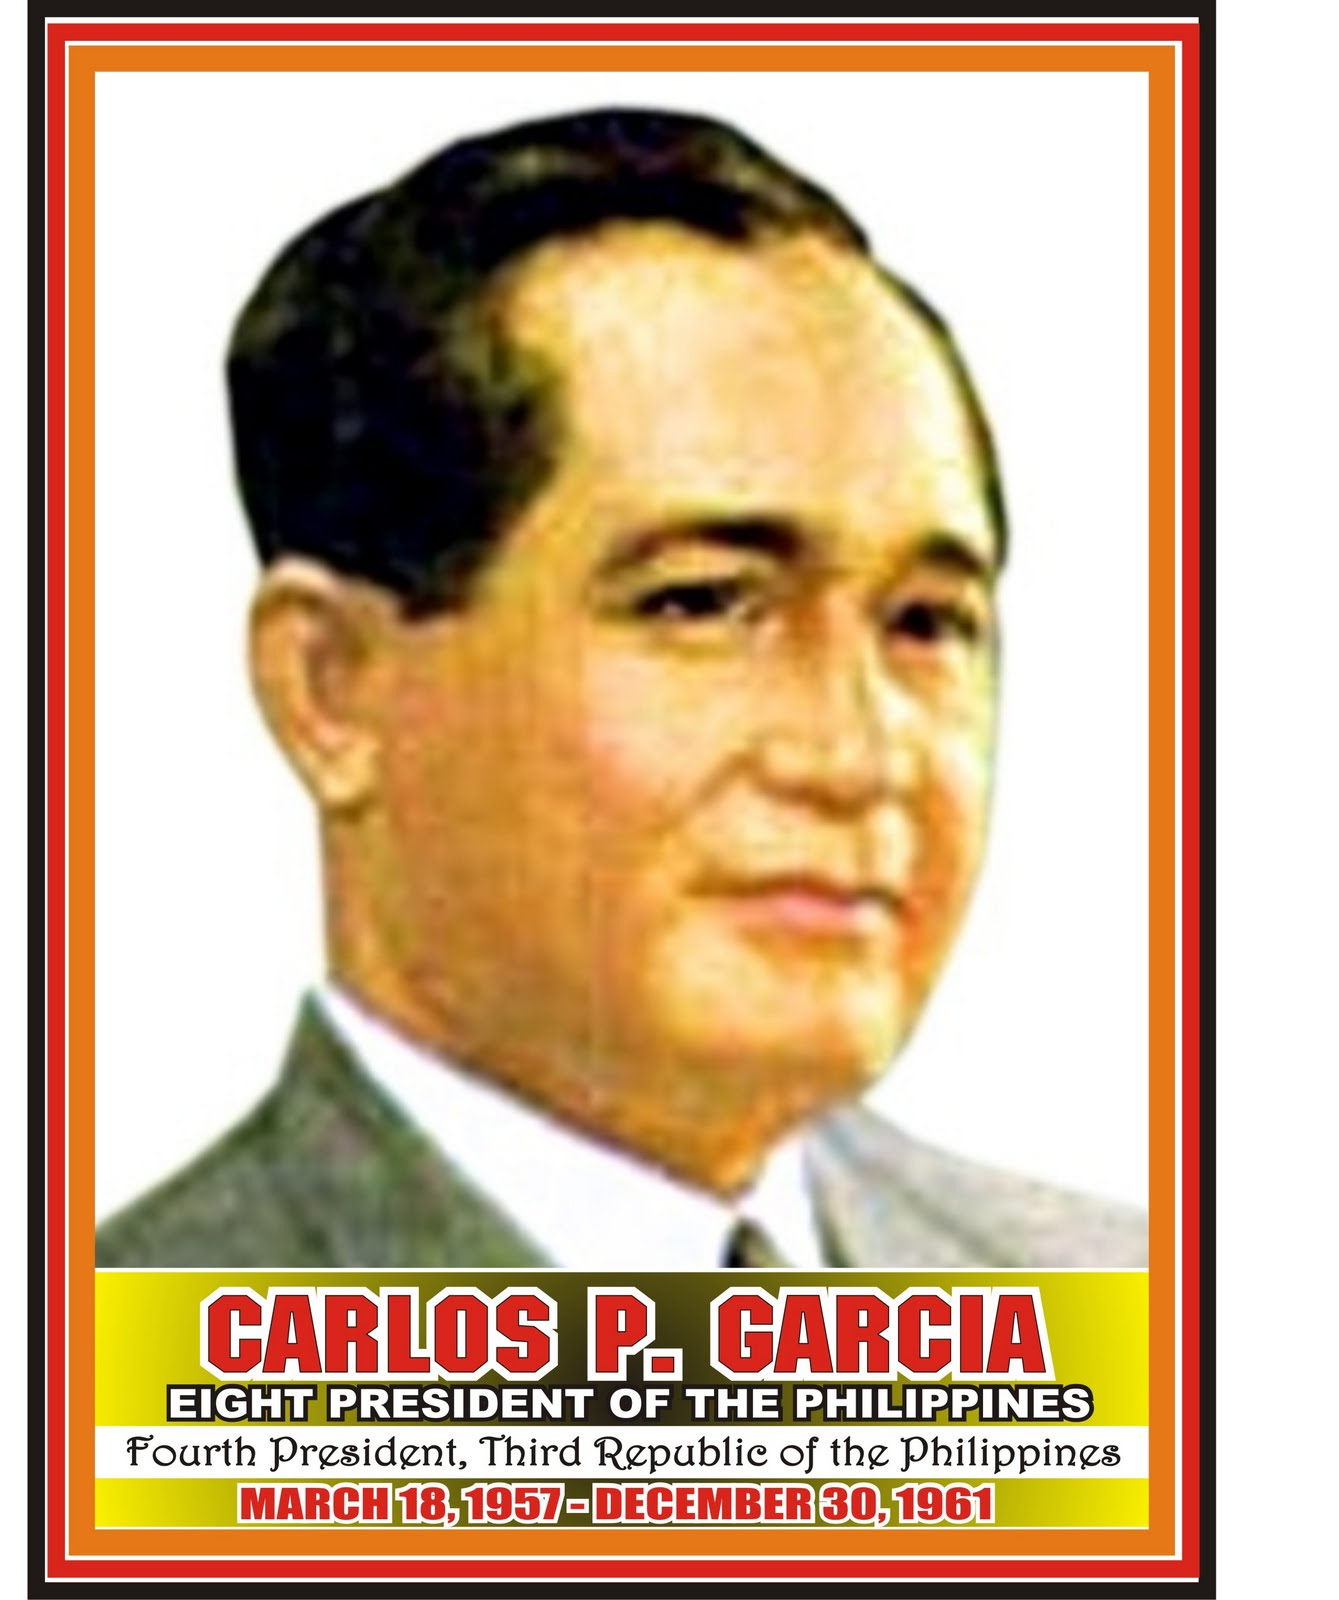 president manuel roxas a hero He lost to manuel roxas,  who delivered the keynote speech accused senate president manuel roxas and his followers of  party members and hero worshipers.